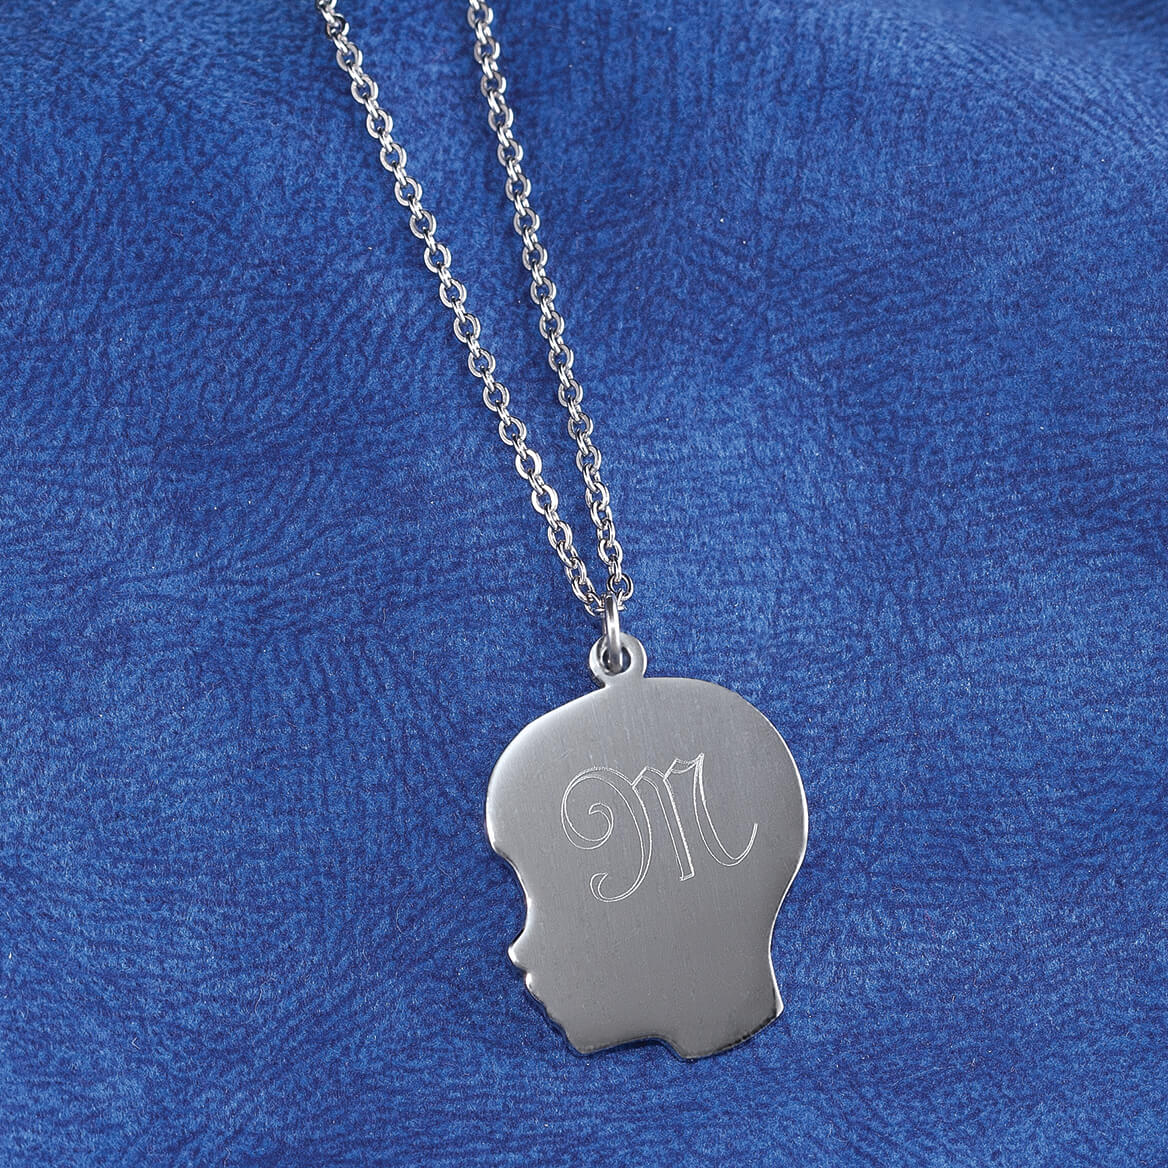 Personalized Silhouette Boy Necklace-354542